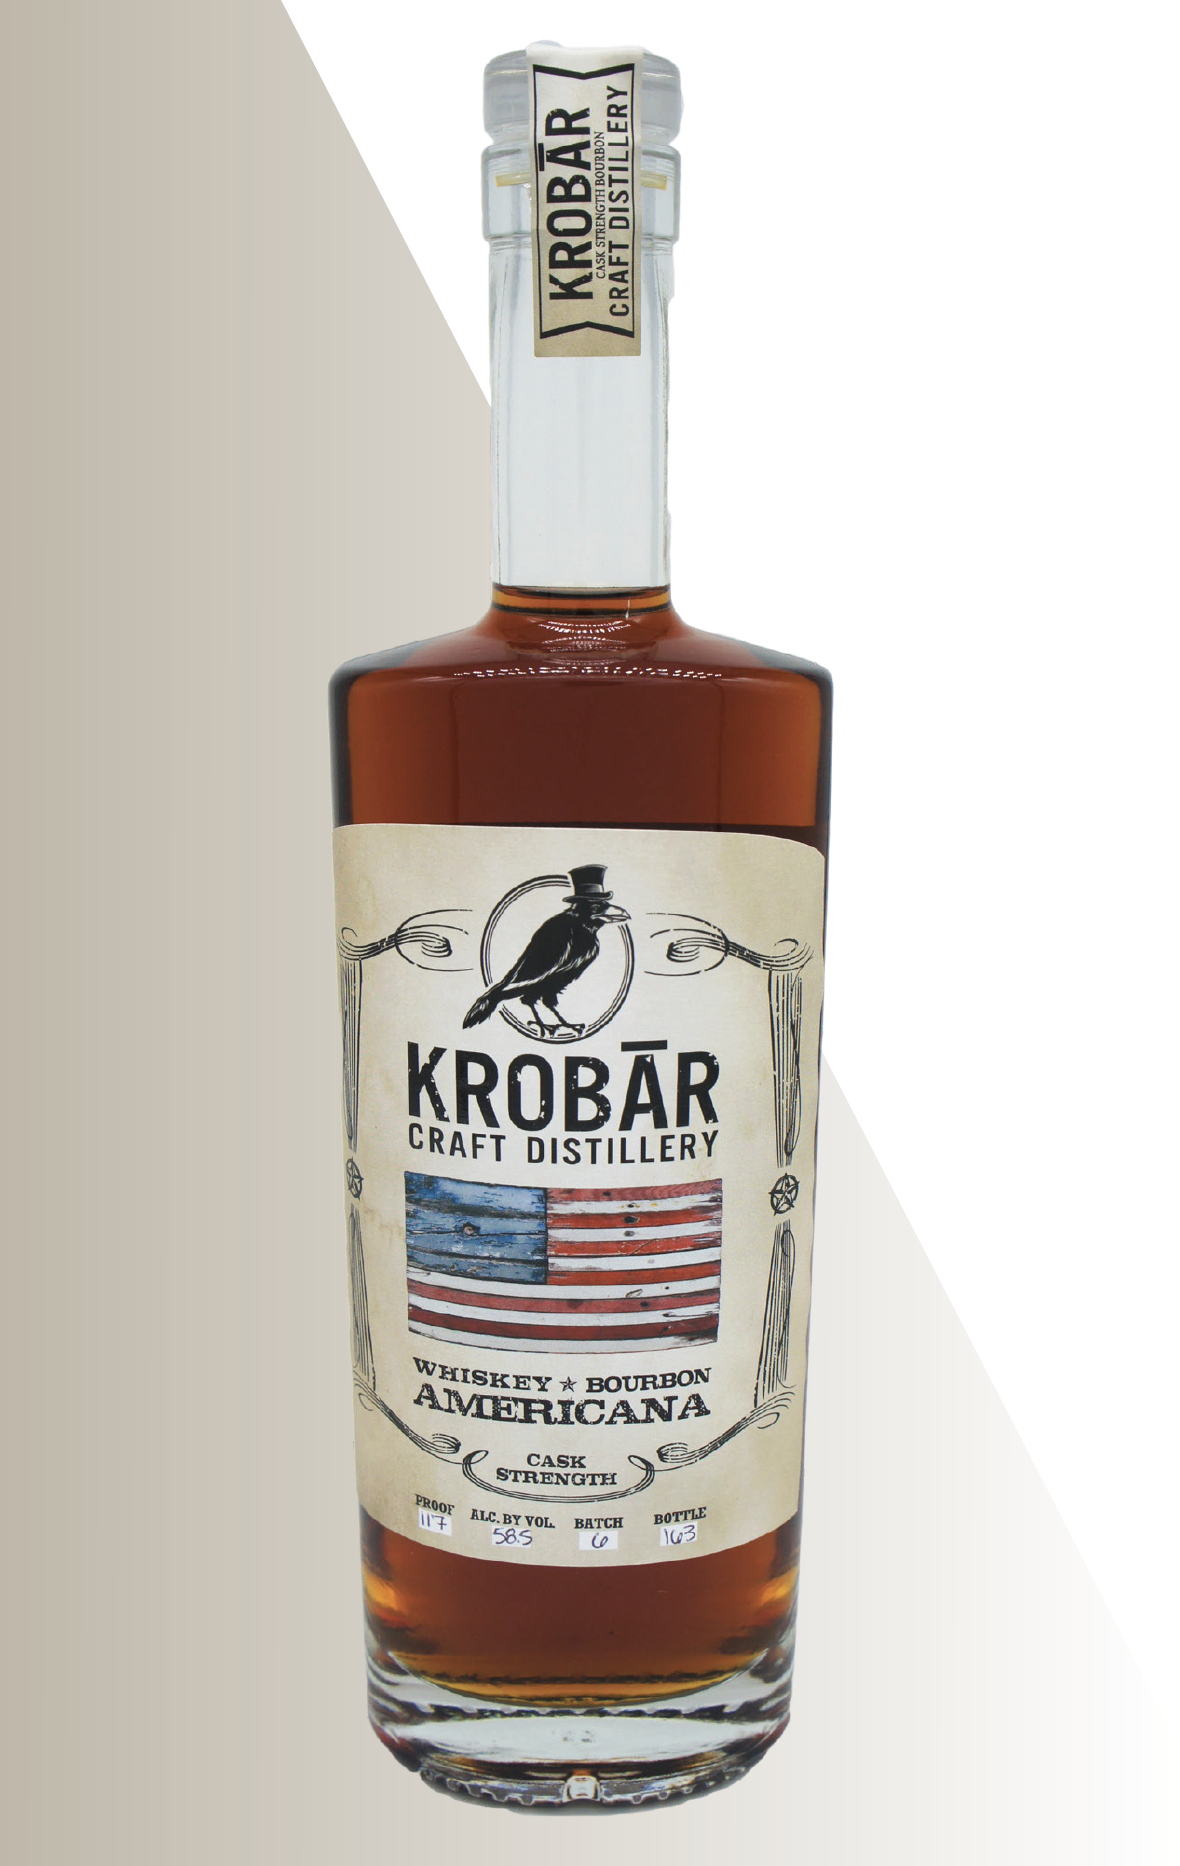 - KROBĀR Americana Cask BourbonAfter distillation, this high Rye Bourbon is placed 53 gallon #2, 3, and 4 char American Oak Barrels and aged for over two years. Once the aging process had finished, we bottle the whiskey straight from the barrel without proofing it down.Awards: California Craft Spirits Competition, Gold Medal